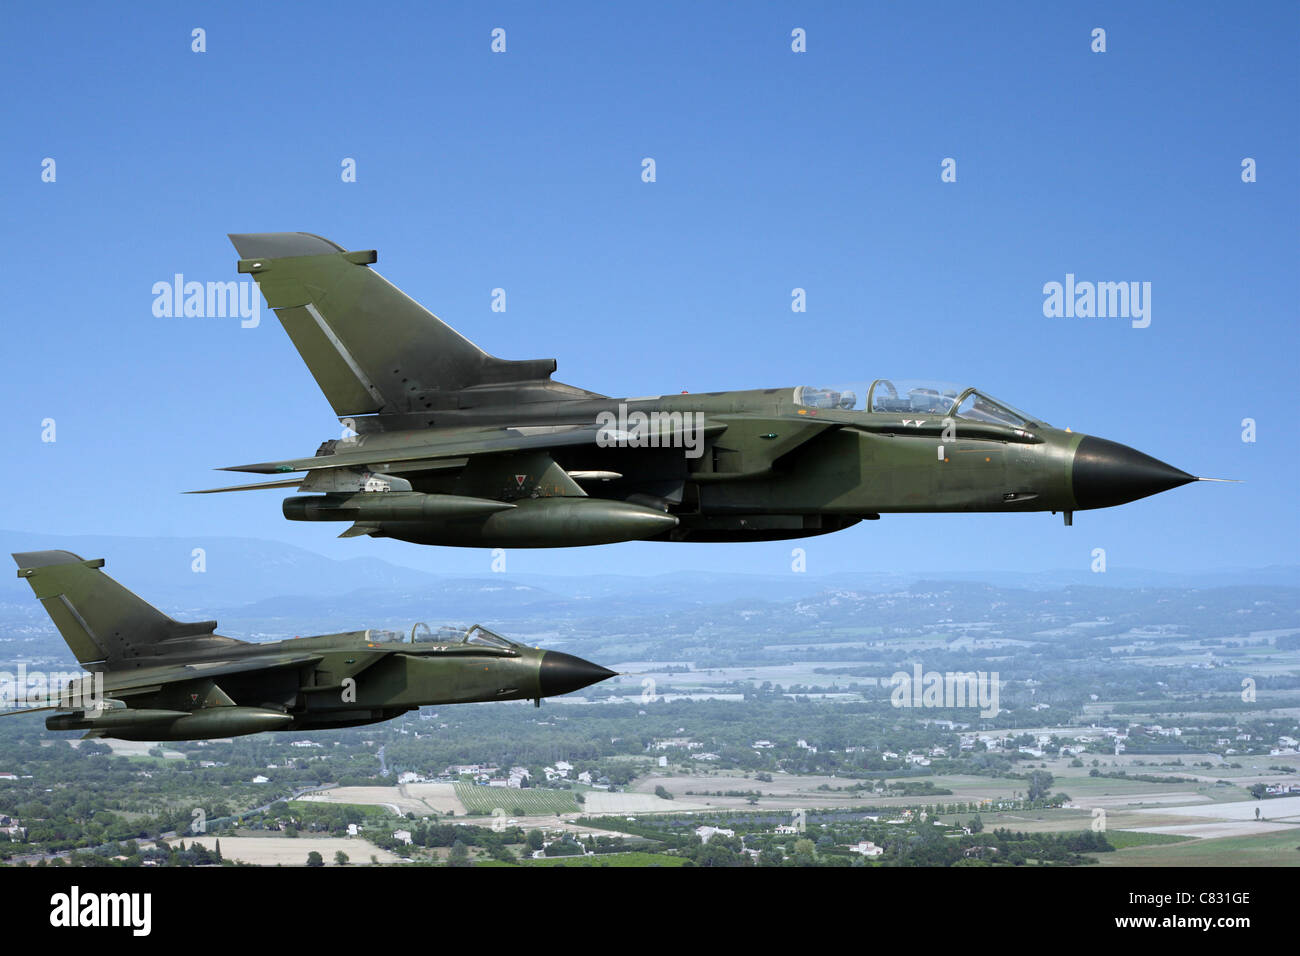 Two green fighter jets - Stock Image